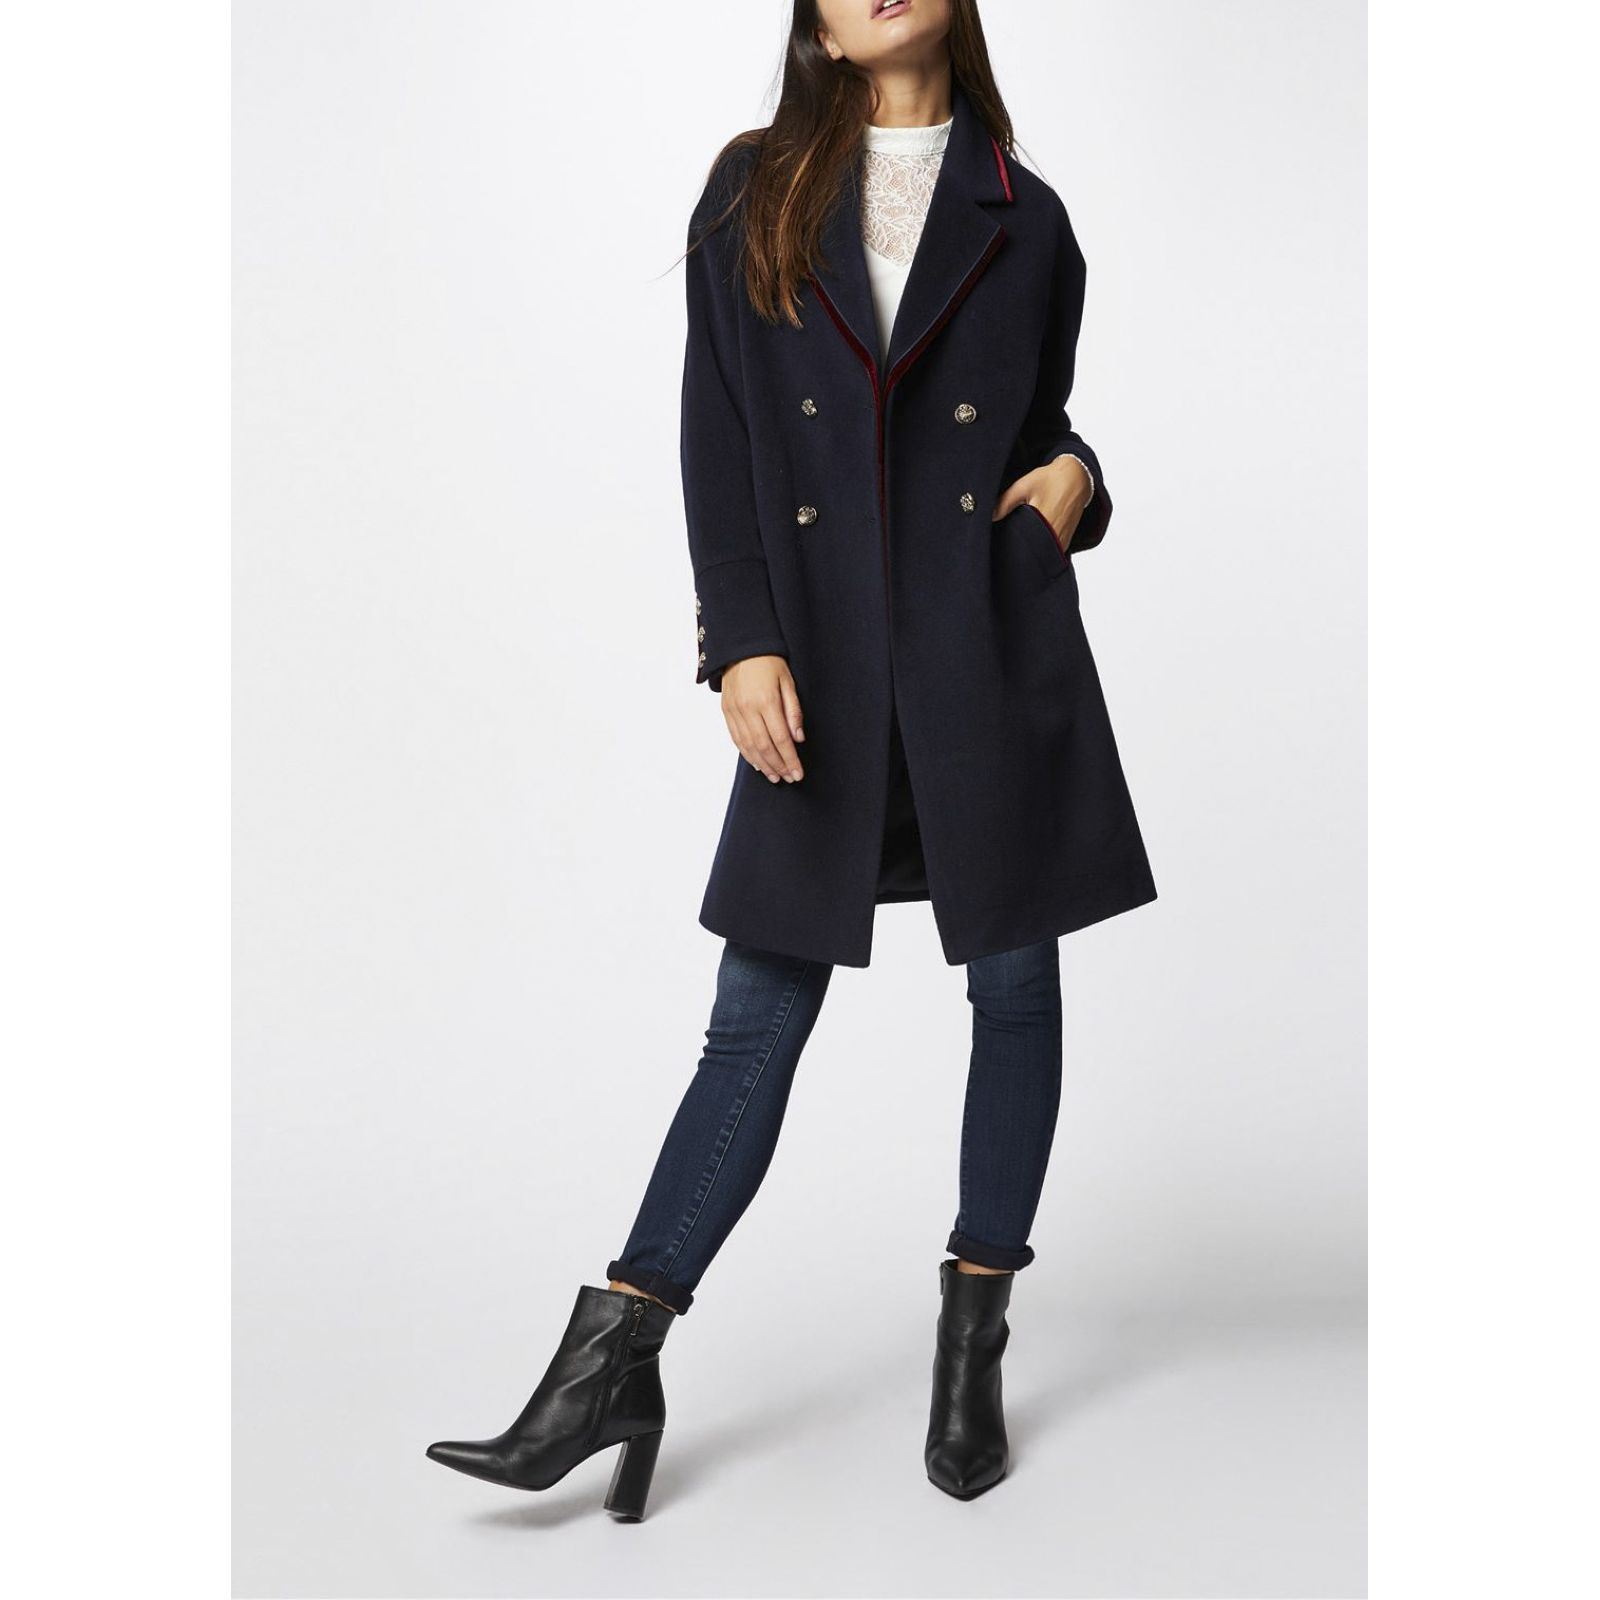 eb60be92601 Morgan Manteau 66% laine - bleu marine